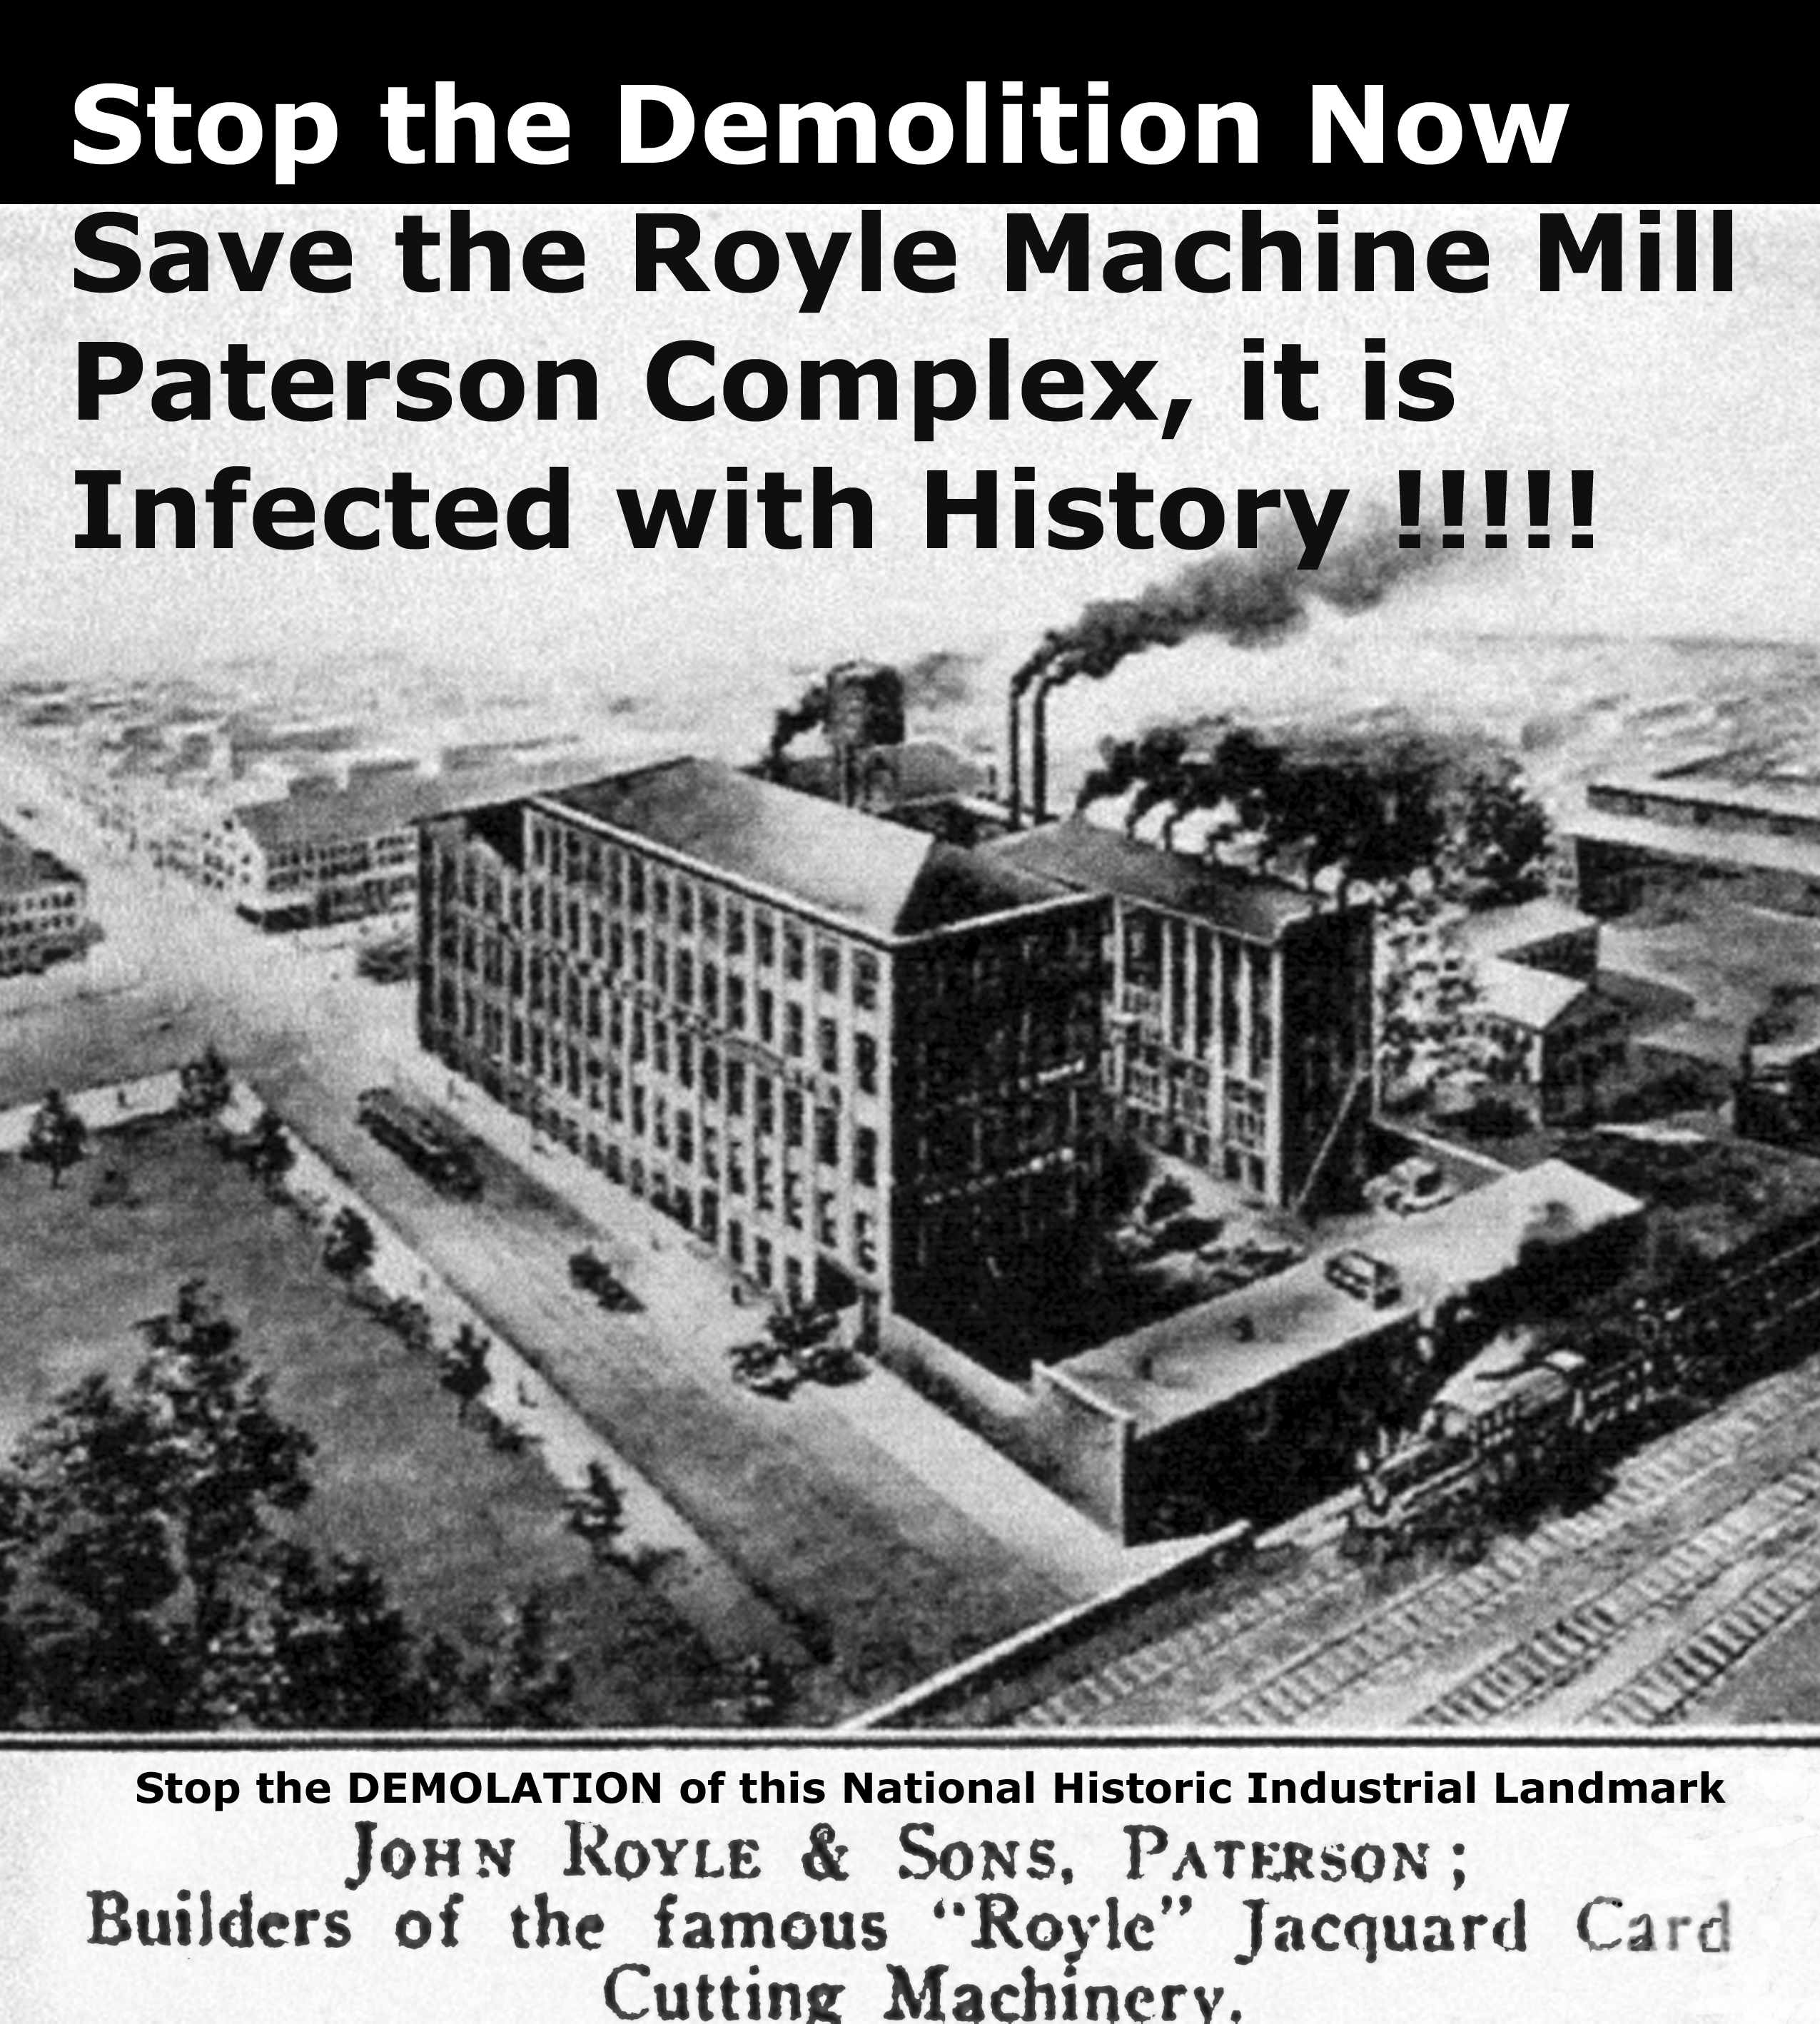 Save the Royle Mill!